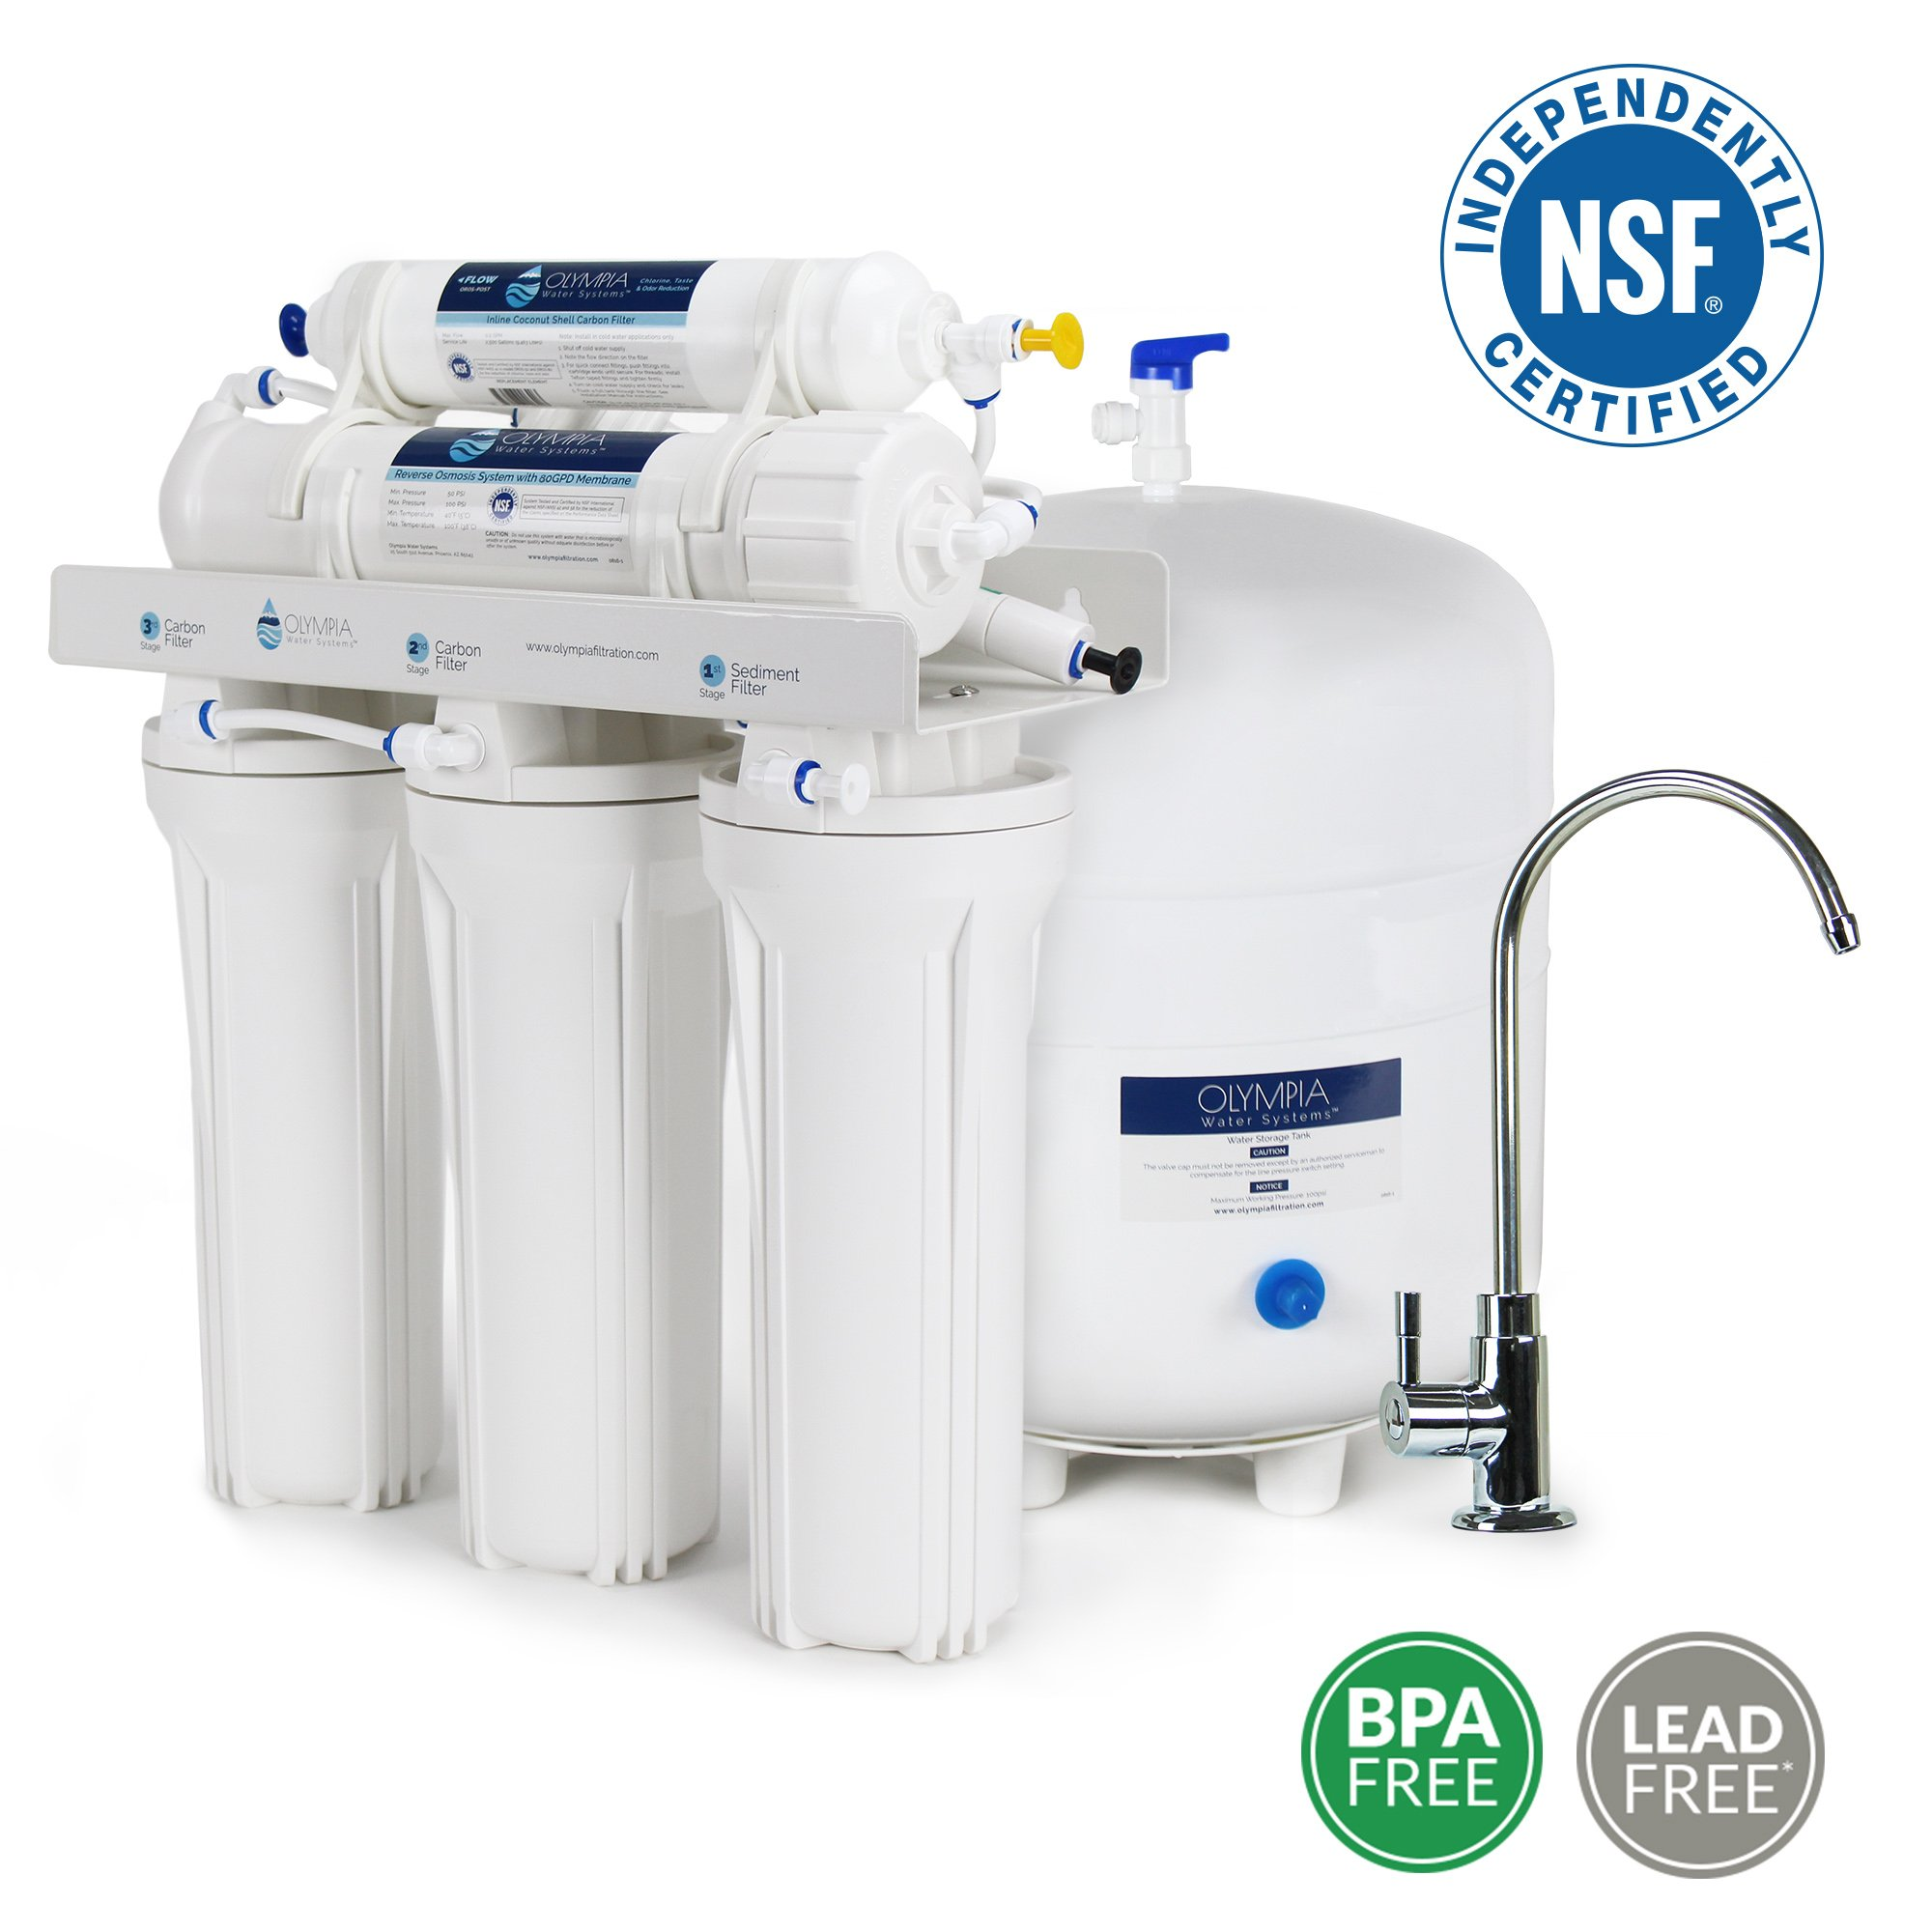 Olympia Water Systems OROS-80 5-Stage Reverse Osmosis Water Filtration System with 80GPD Membrane - NSF Certified